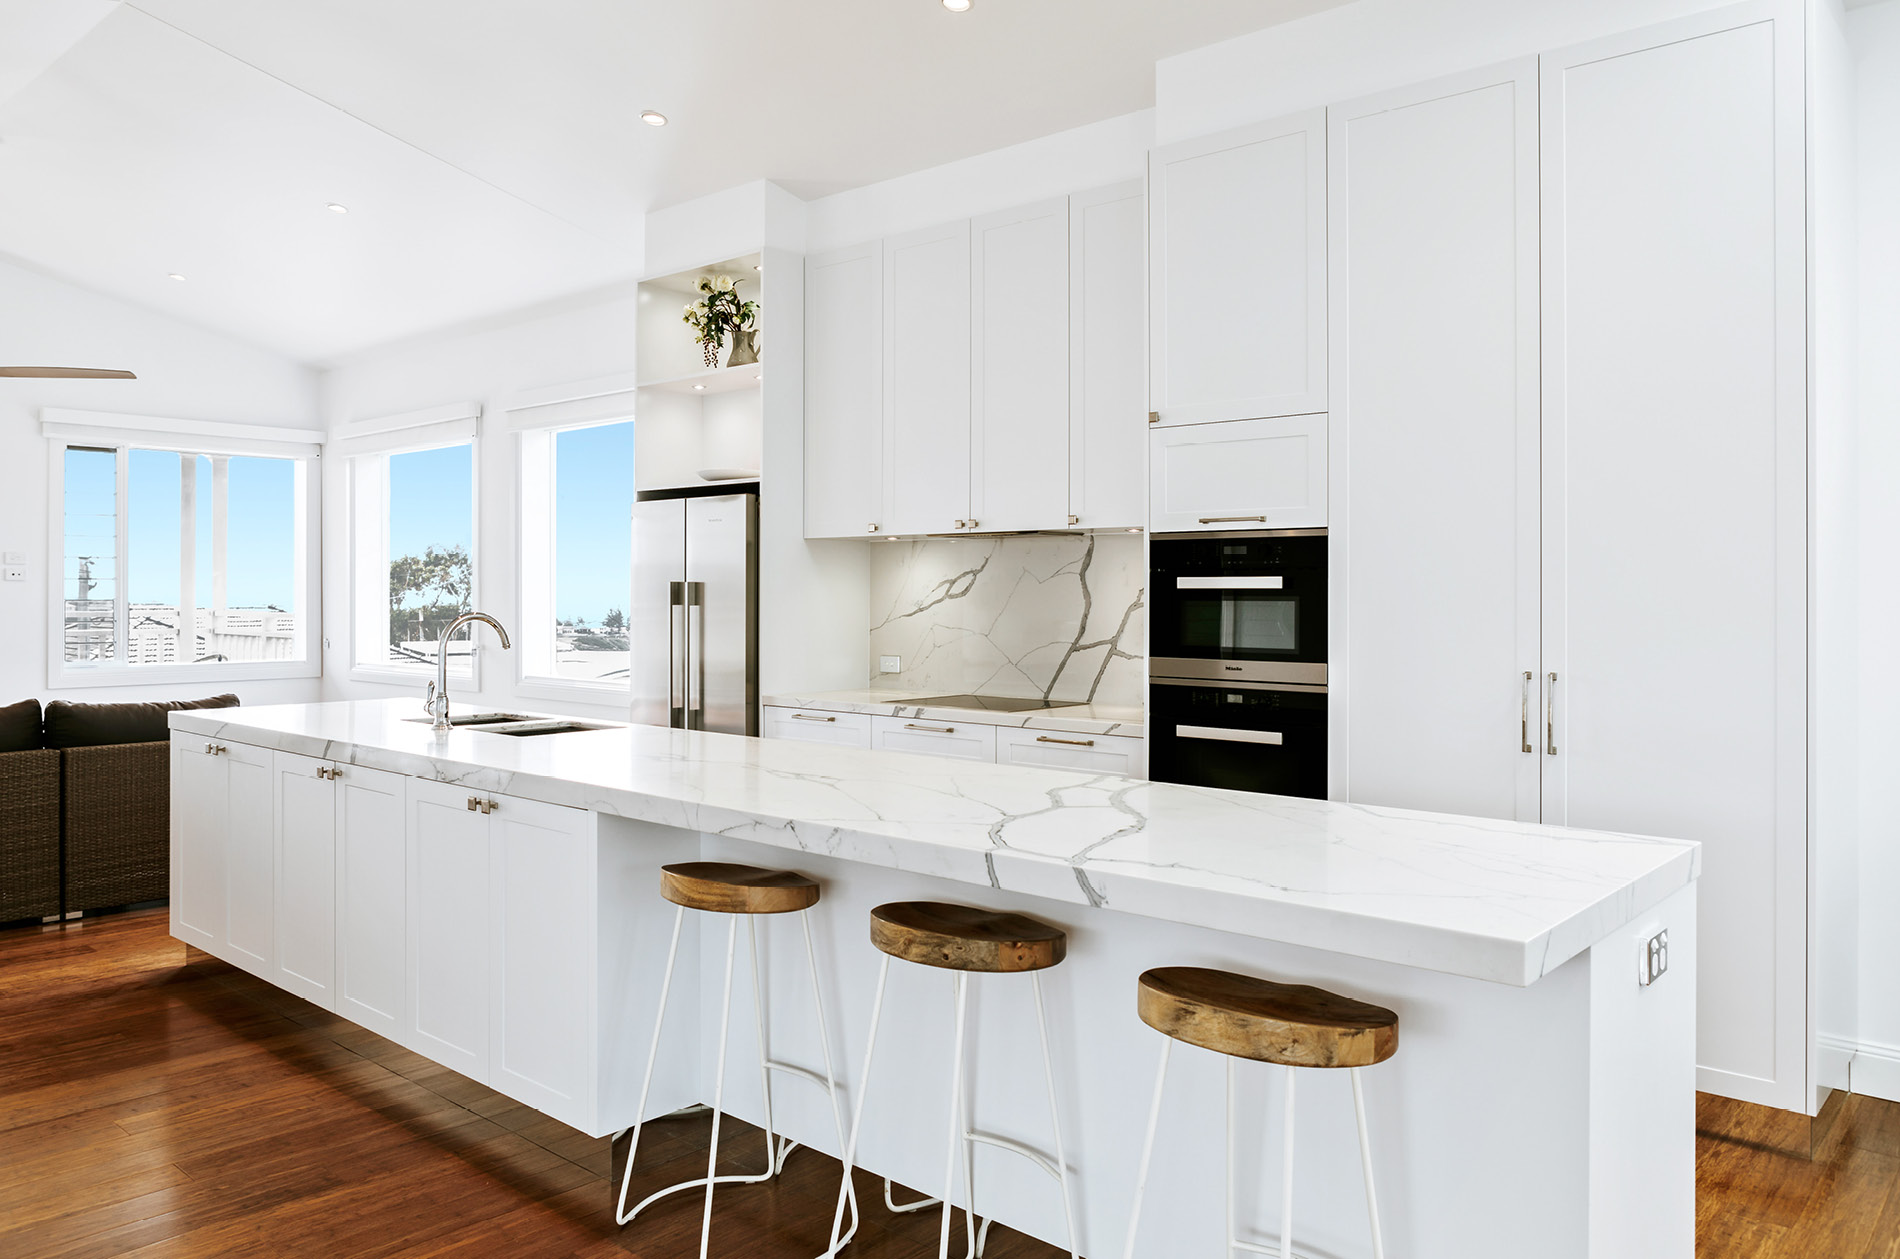 white kitchen bench lowes pendant lights beautiful with statuario venato exudes sophistication in french provincial design perfectly blends